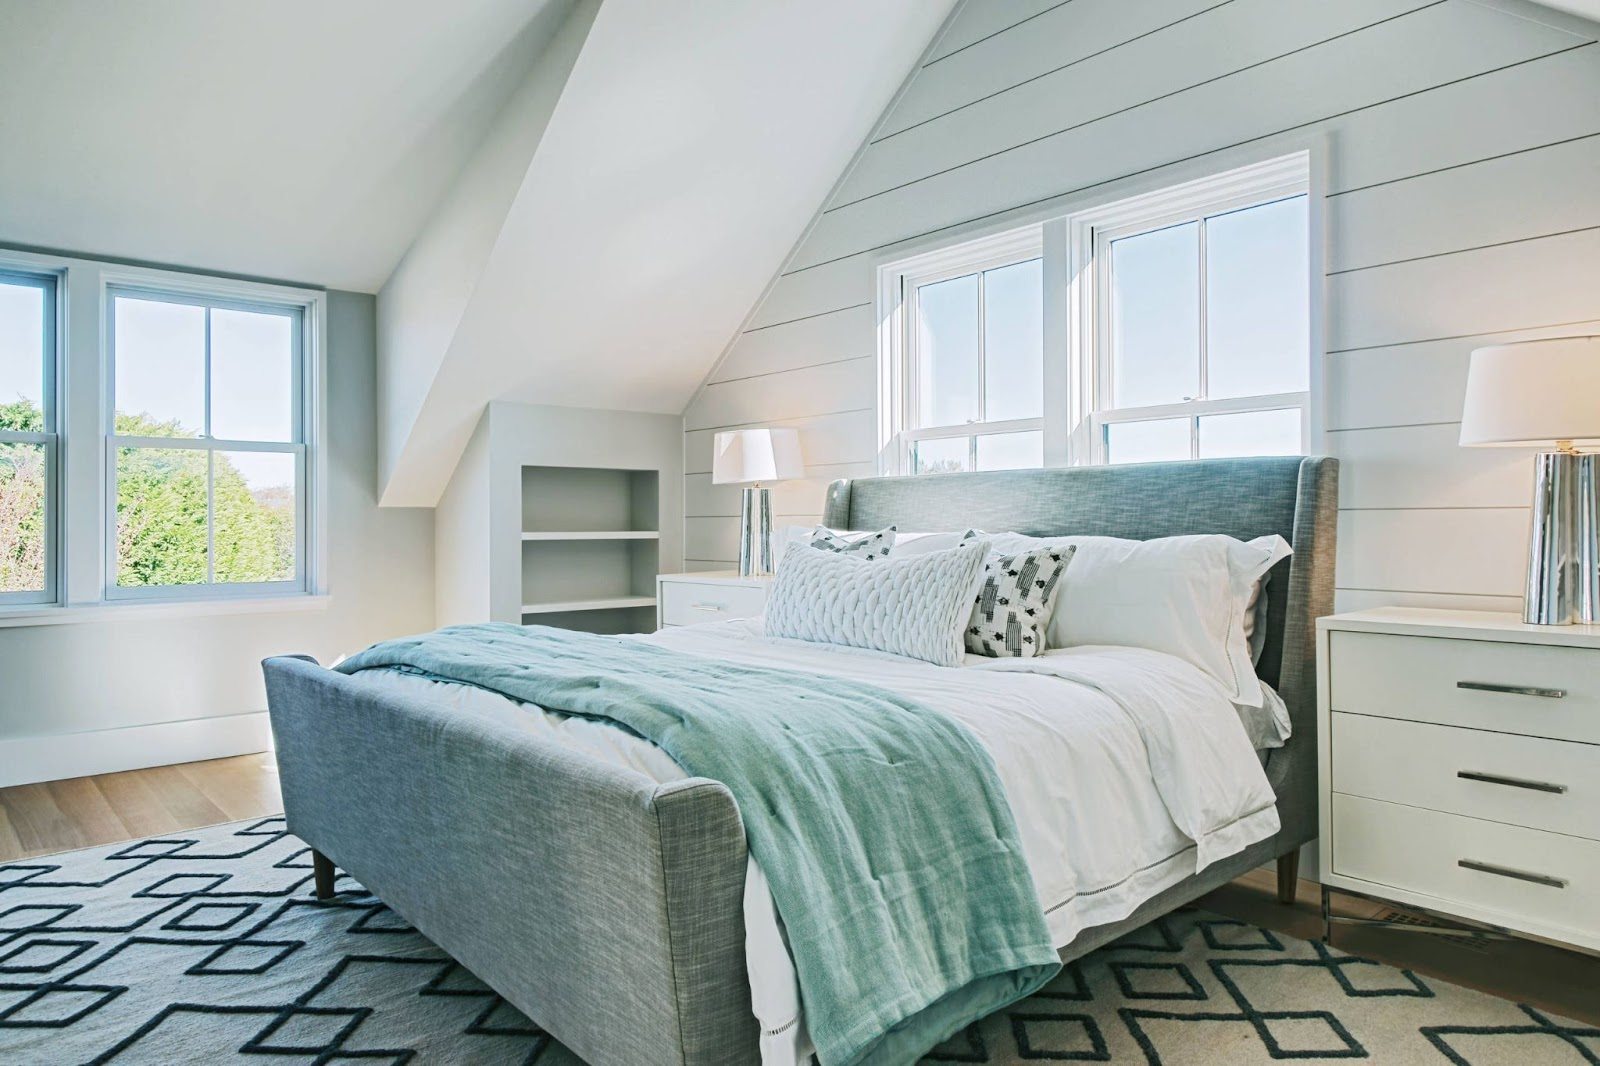 Beach Themed Bedroom with some Shiplap